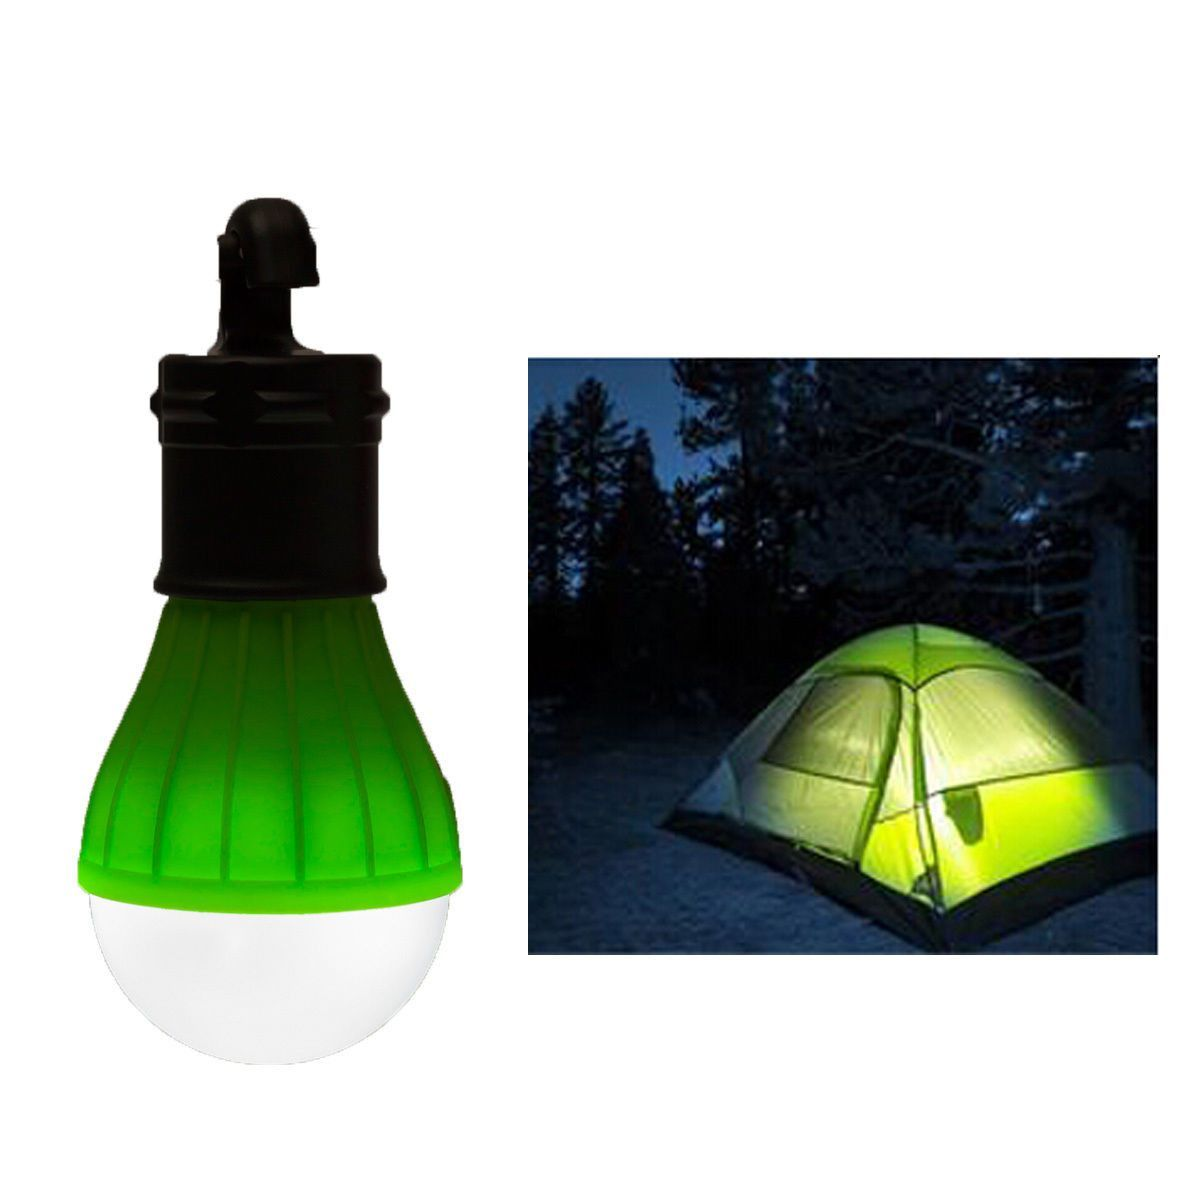 Special Hanging 3 Led Camping Tent Light Bulb Fishing Lantern